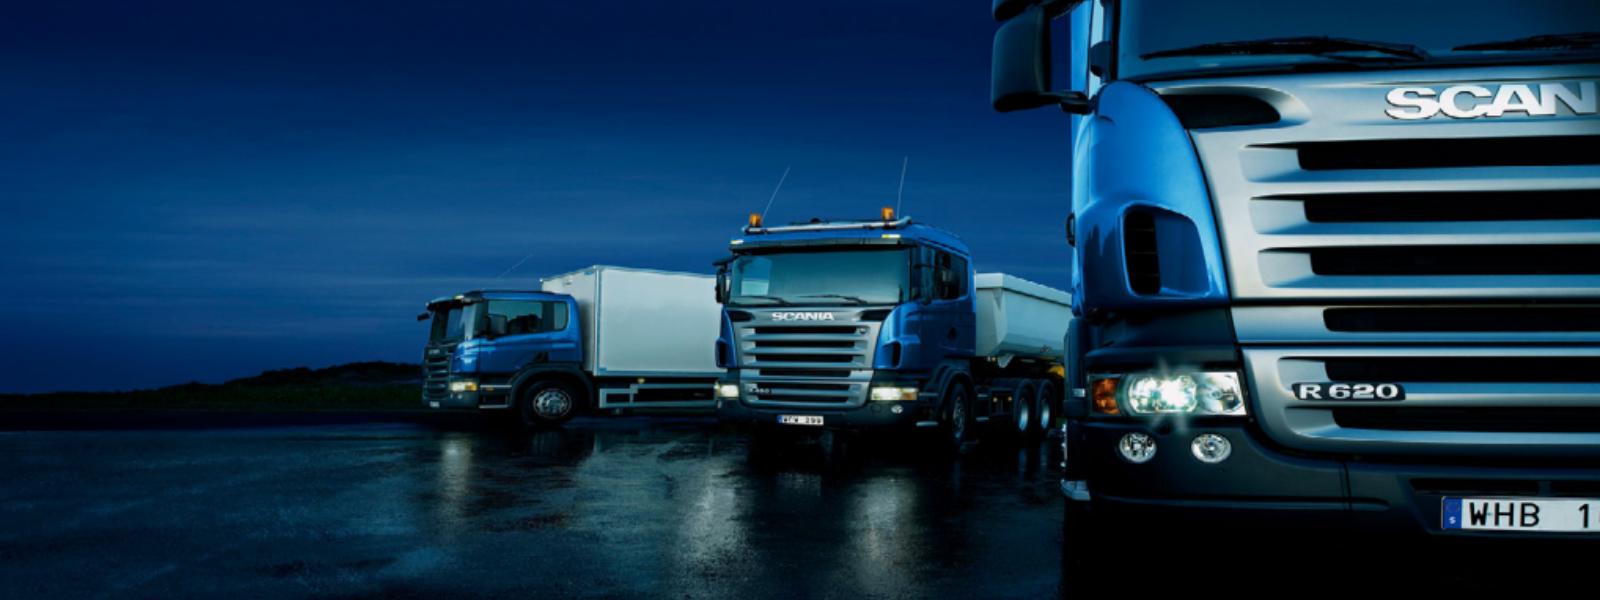 Transports Services